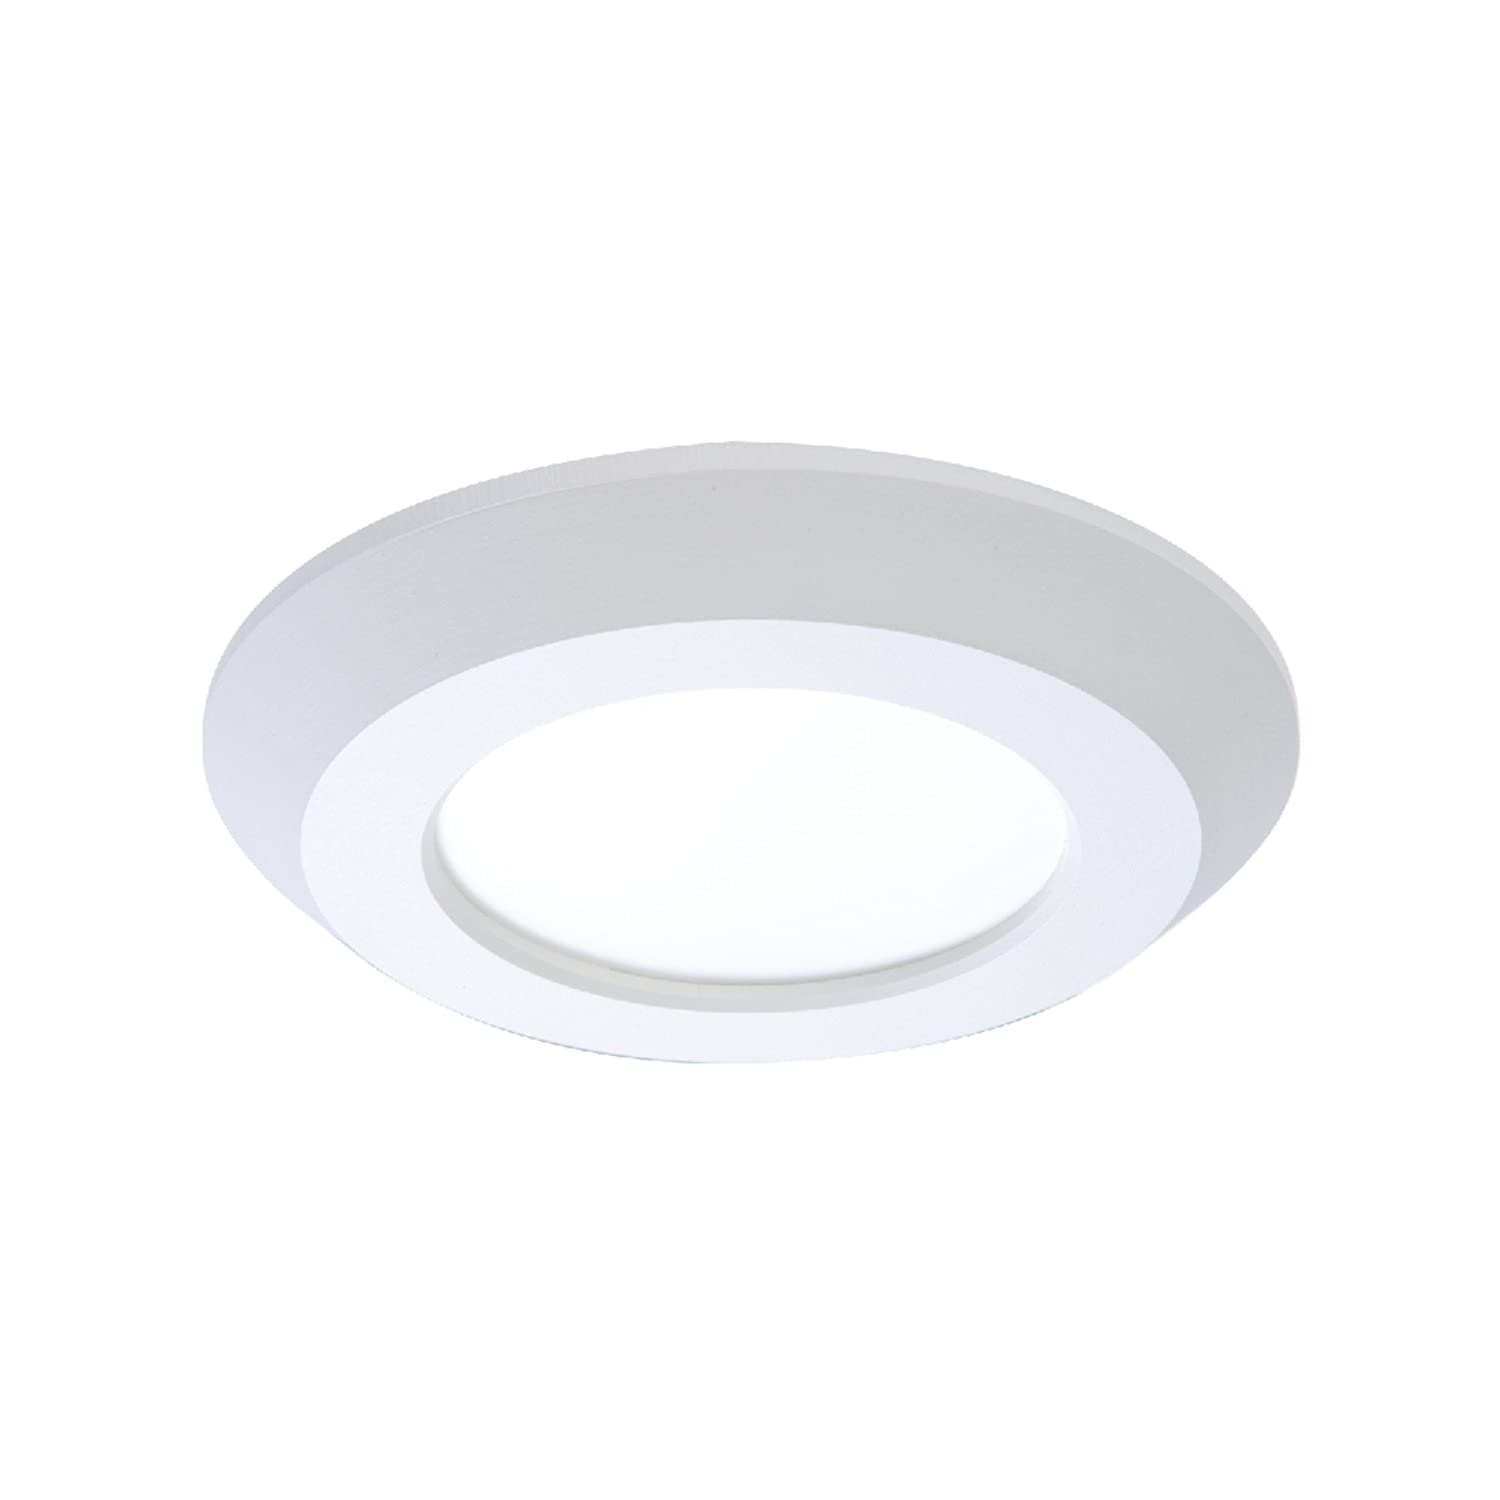 Halo Etn Sld606830whr 6 White Integrated Led Recessed Trim Ceiling Lights No Wiring Related Keywords Suggestions Downlight 80 Cri 3000k Cct